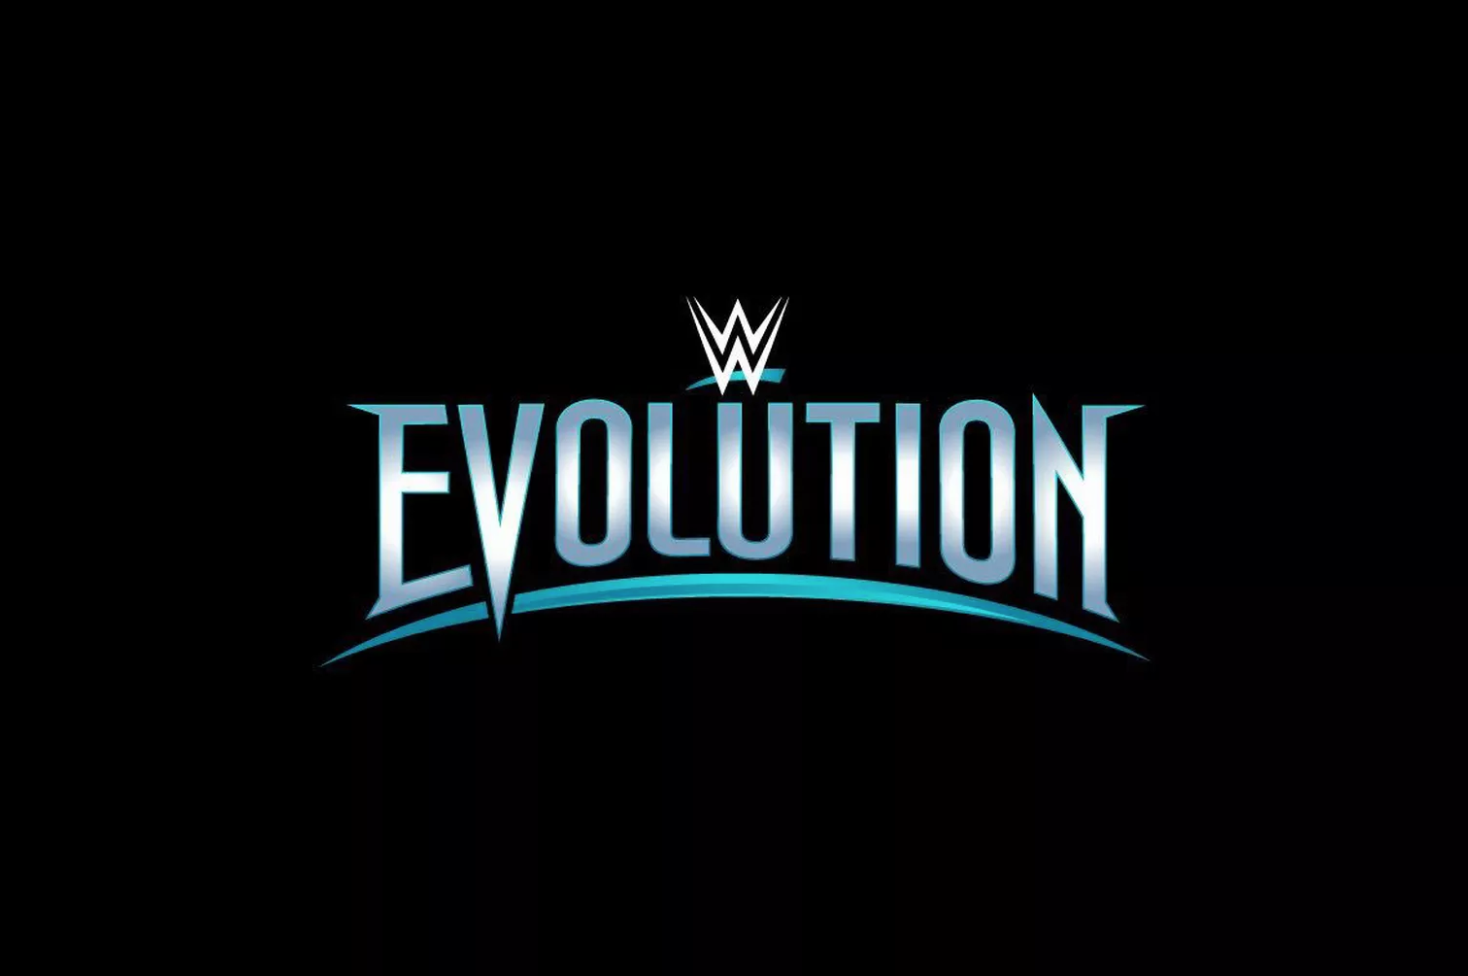 WWE Announces First-Ever All-Women Pay-Per-View 'Evolution'